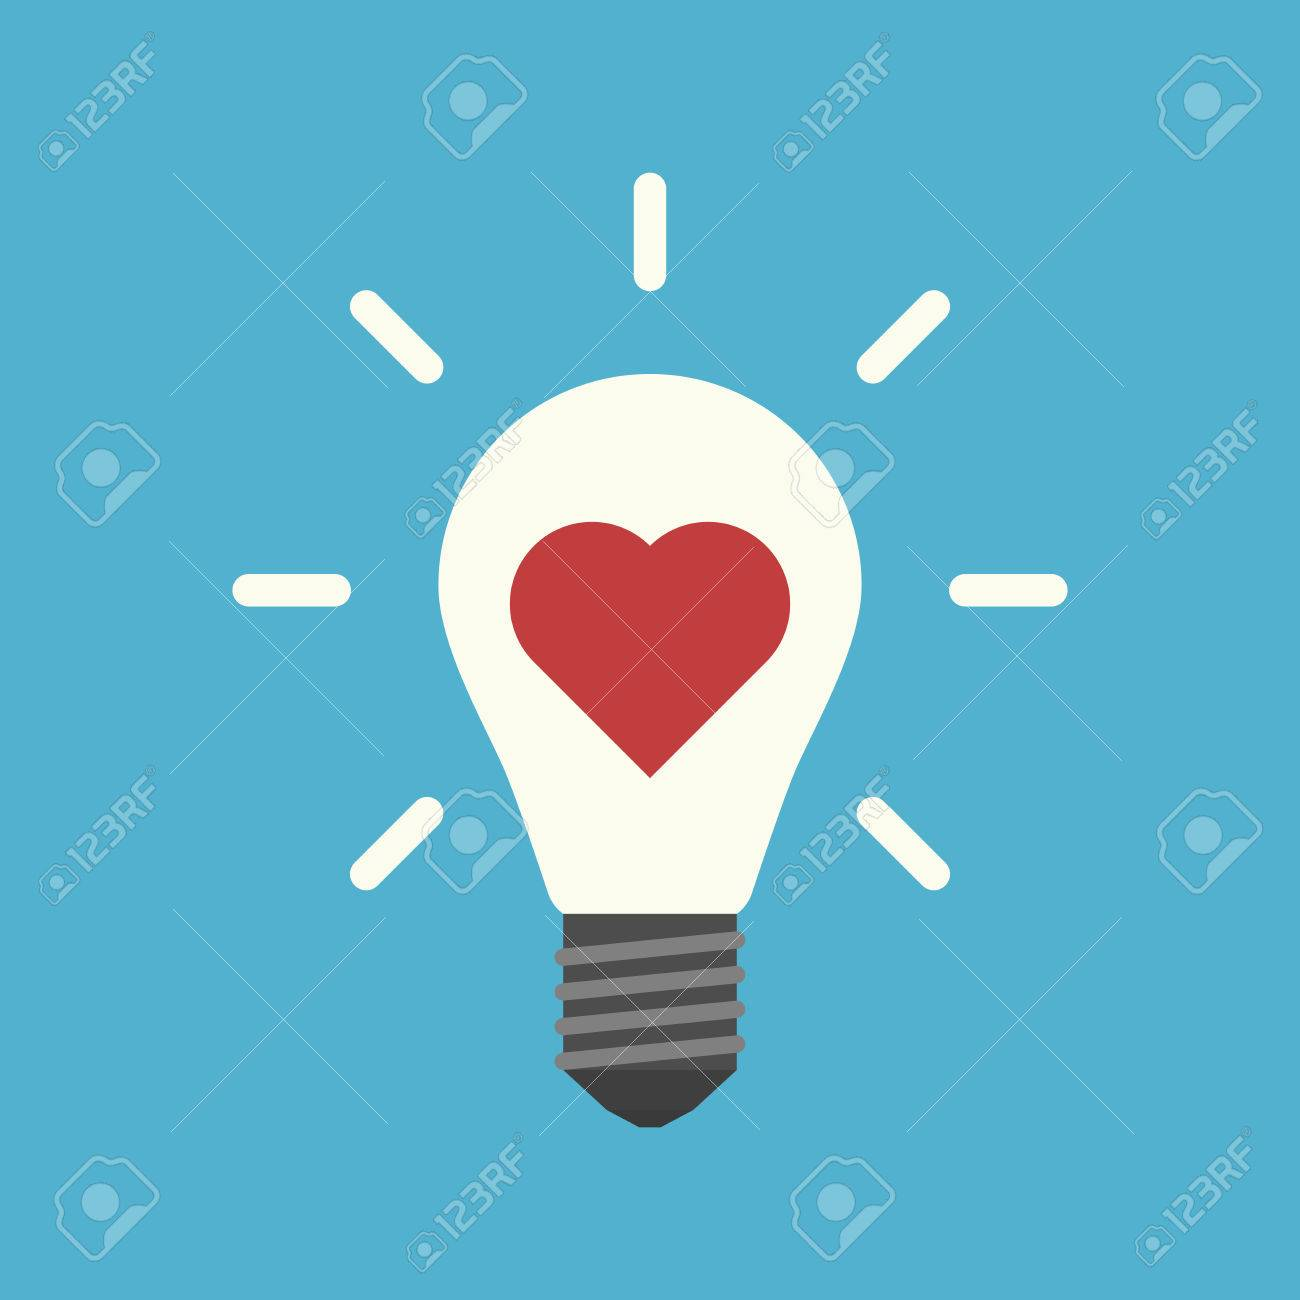 Red Heart Inside Light Bulb With Rays On Blue Background ...